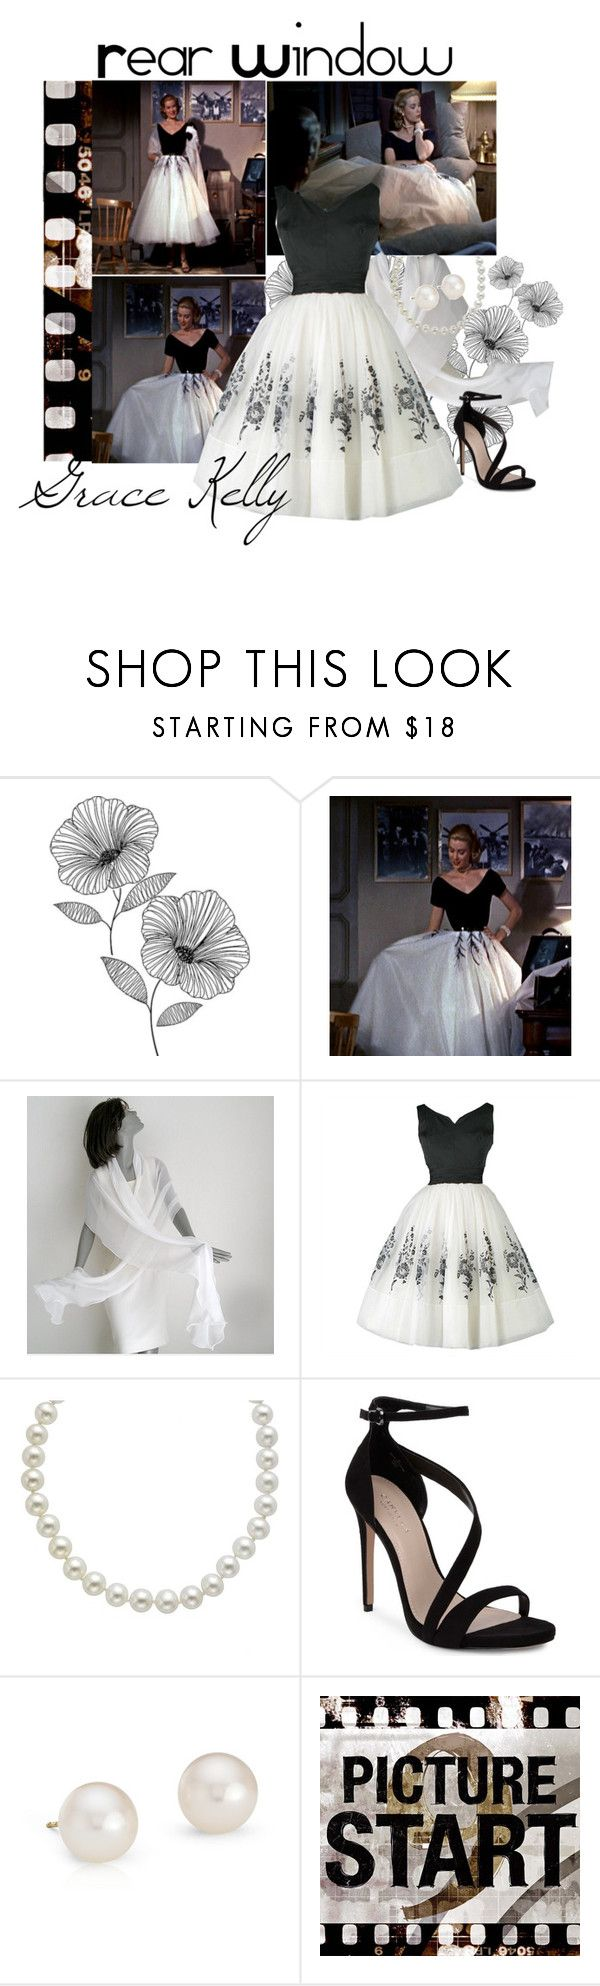 """""""grace kelly in rear window"""" by retrorose ❤ liked on Polyvore featuring Wall Pops!, Grace, Carvela, Blue Nile and Universal Lighting and Decor"""